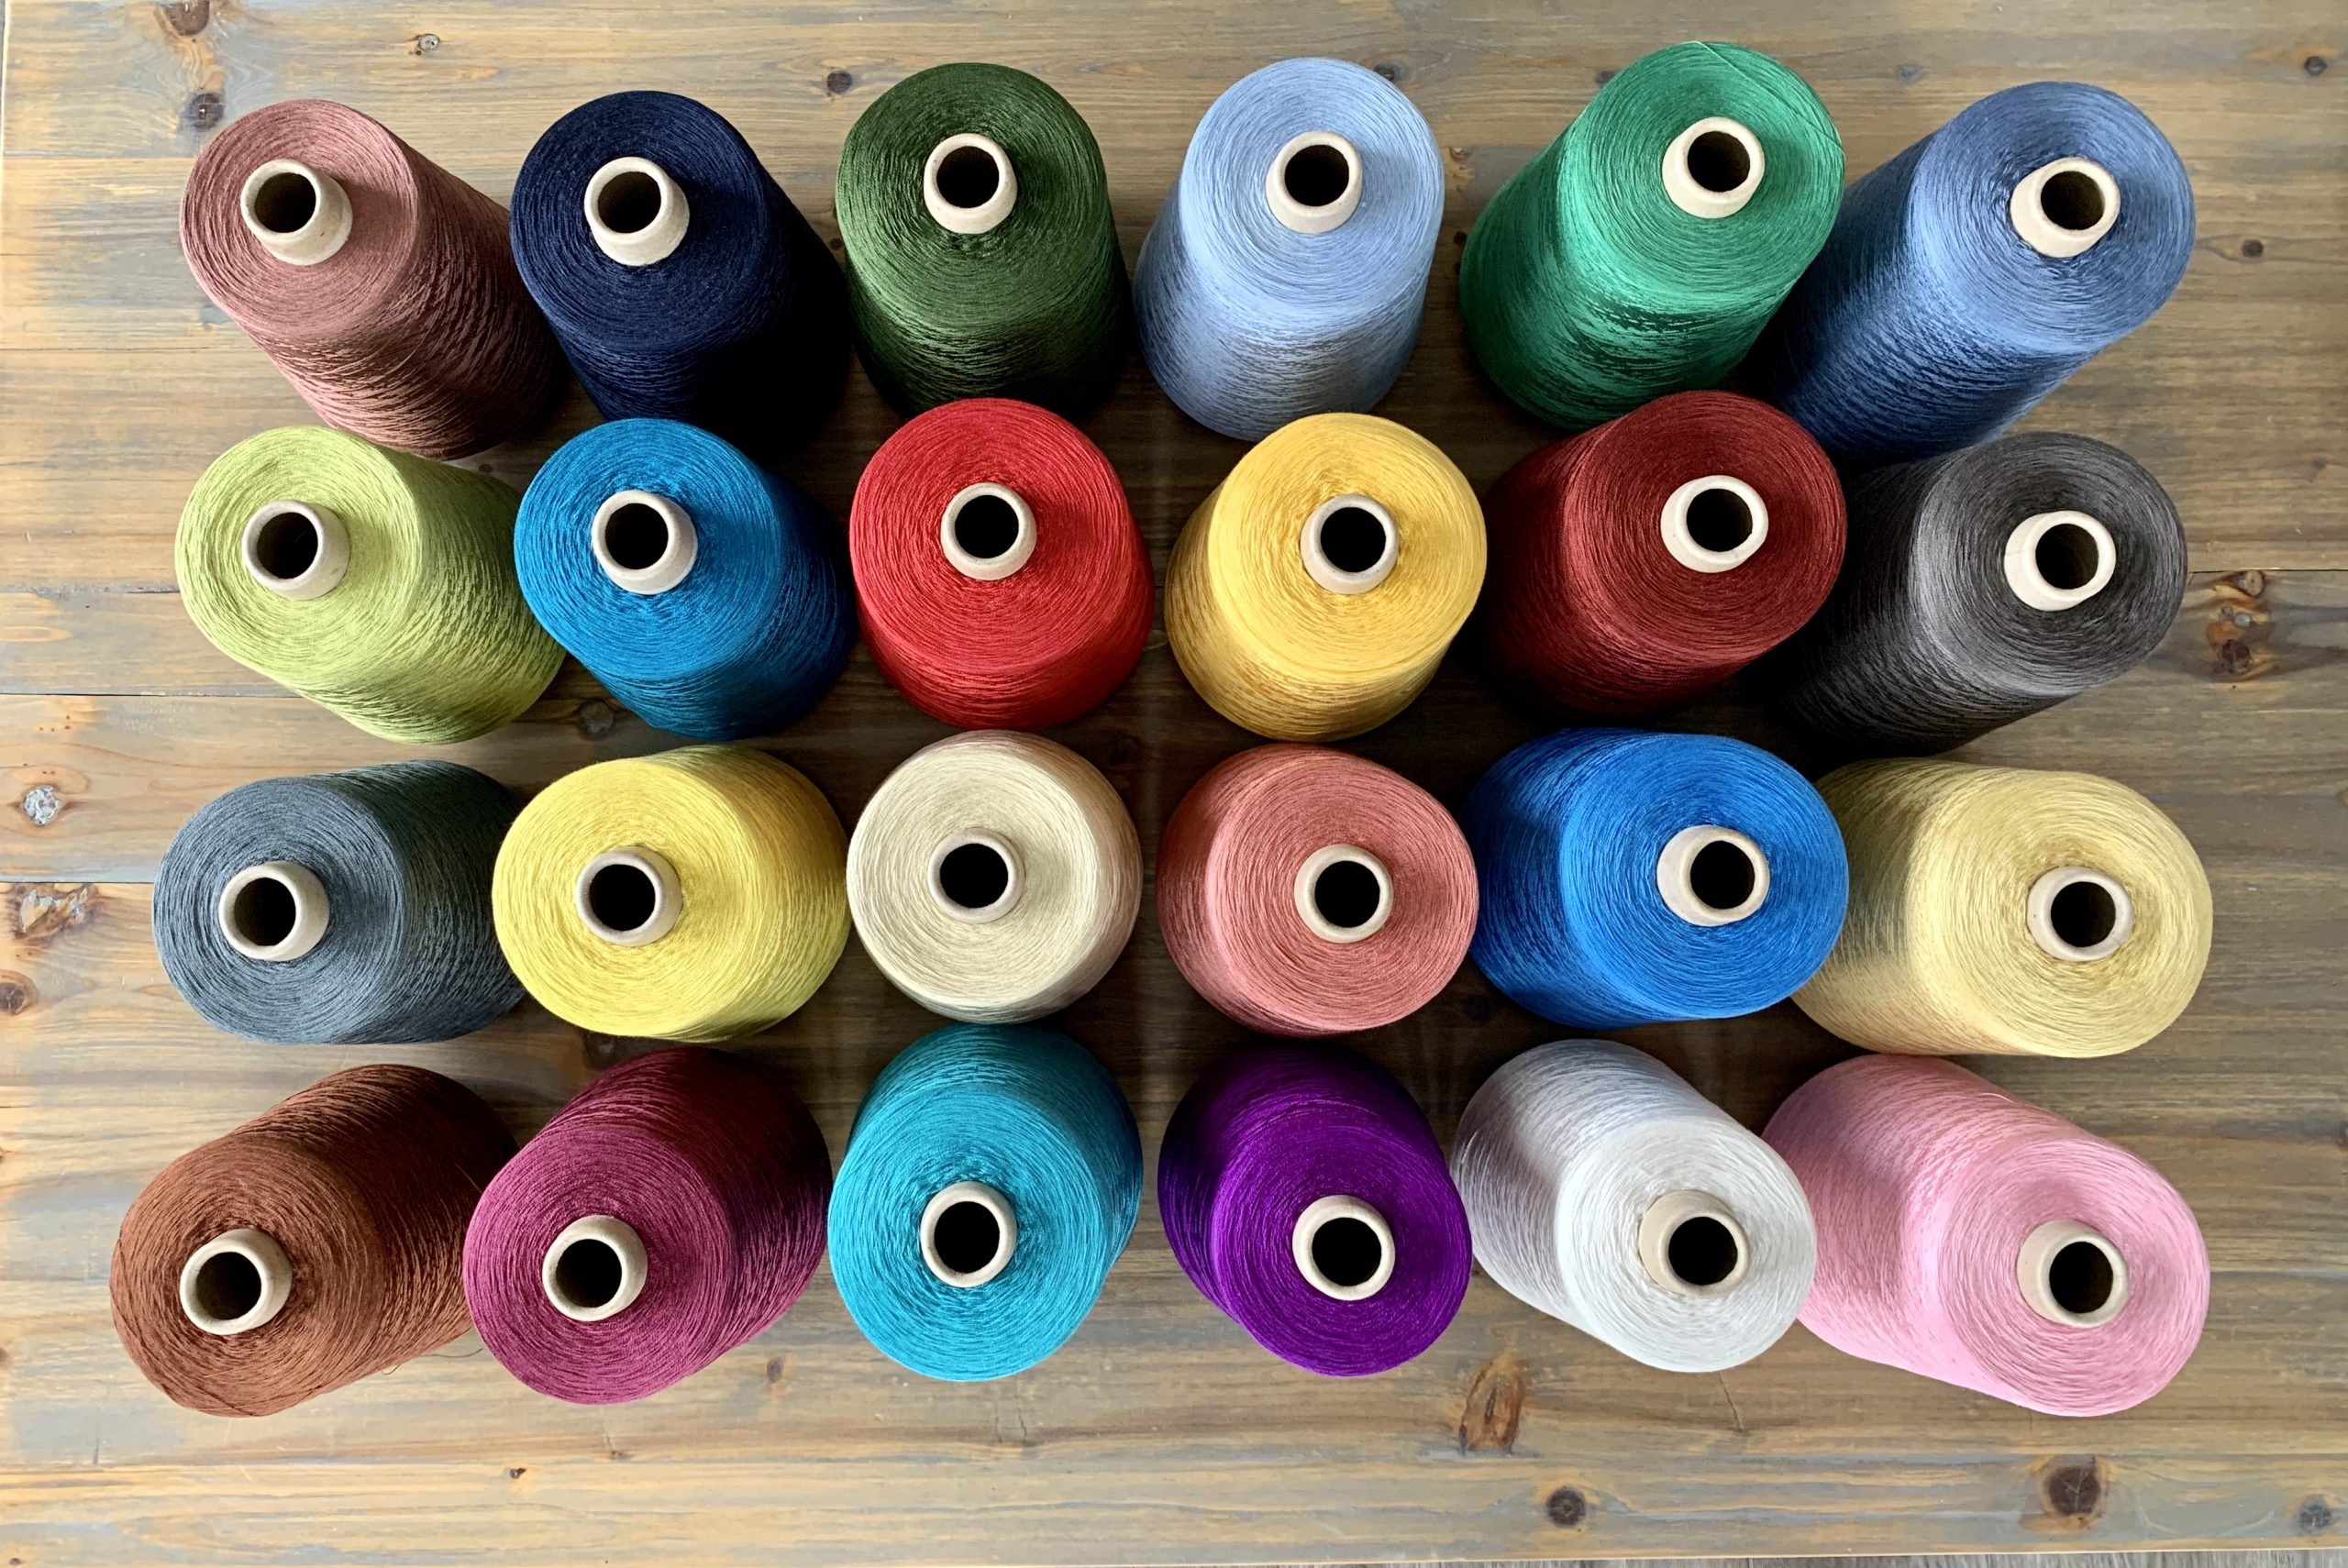 Dyed Silk yarn - Eurestex Silk Yarn - Worldwide delivery